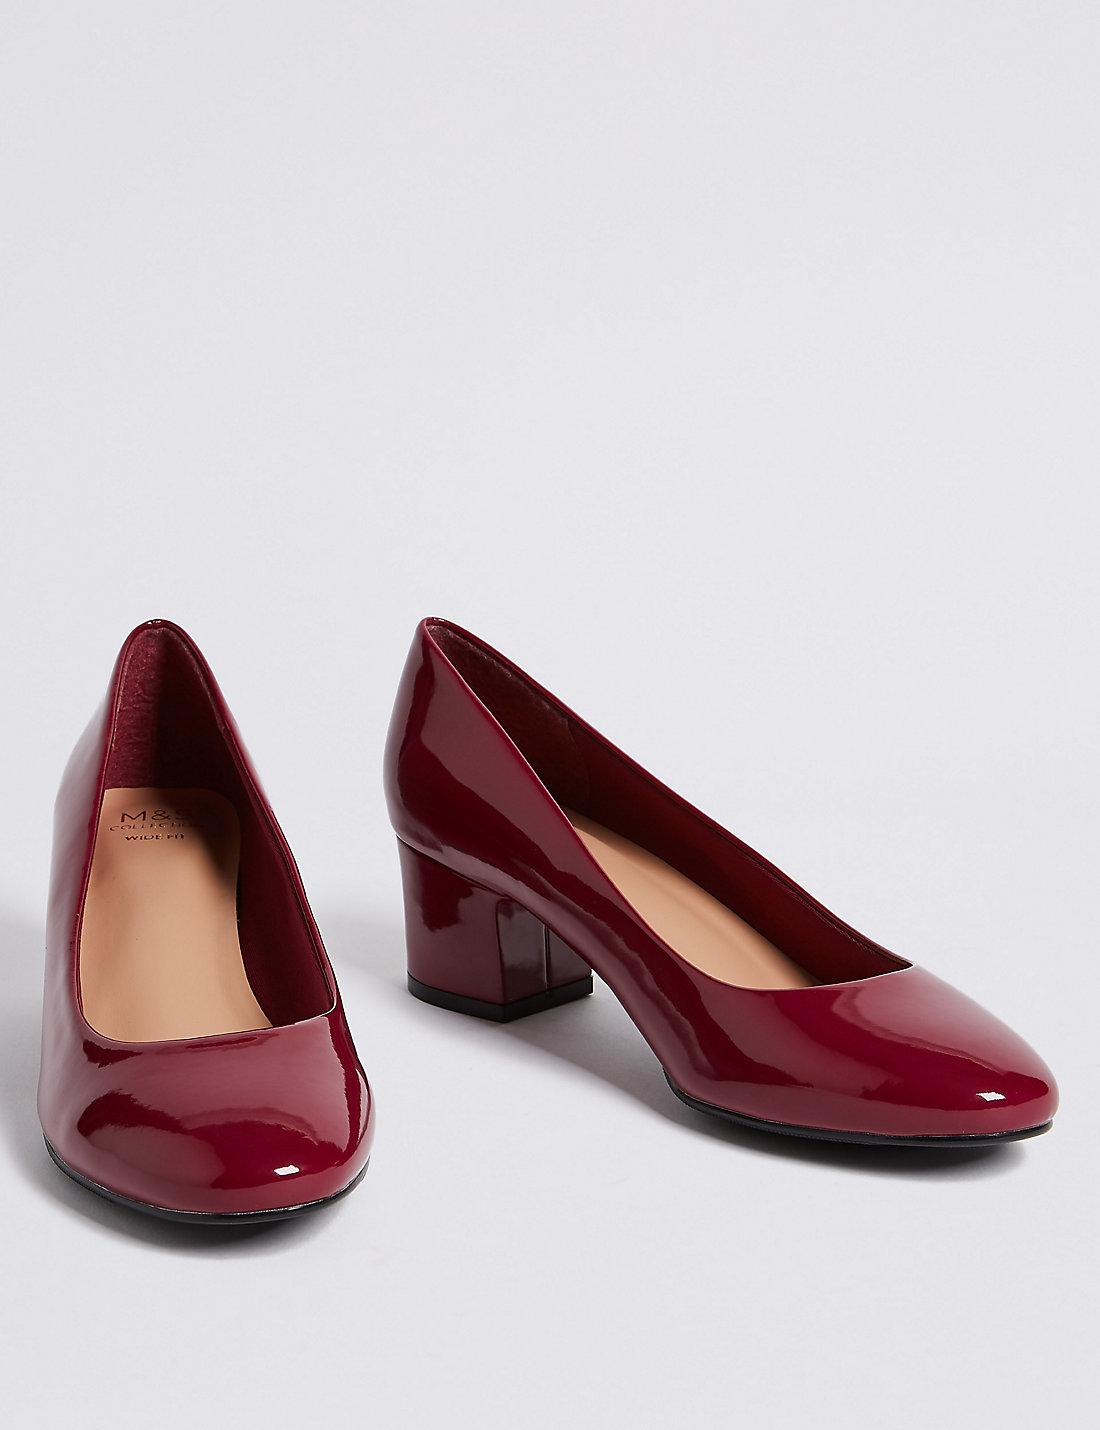 marks and spencer wide fit shoes 9b1ca2